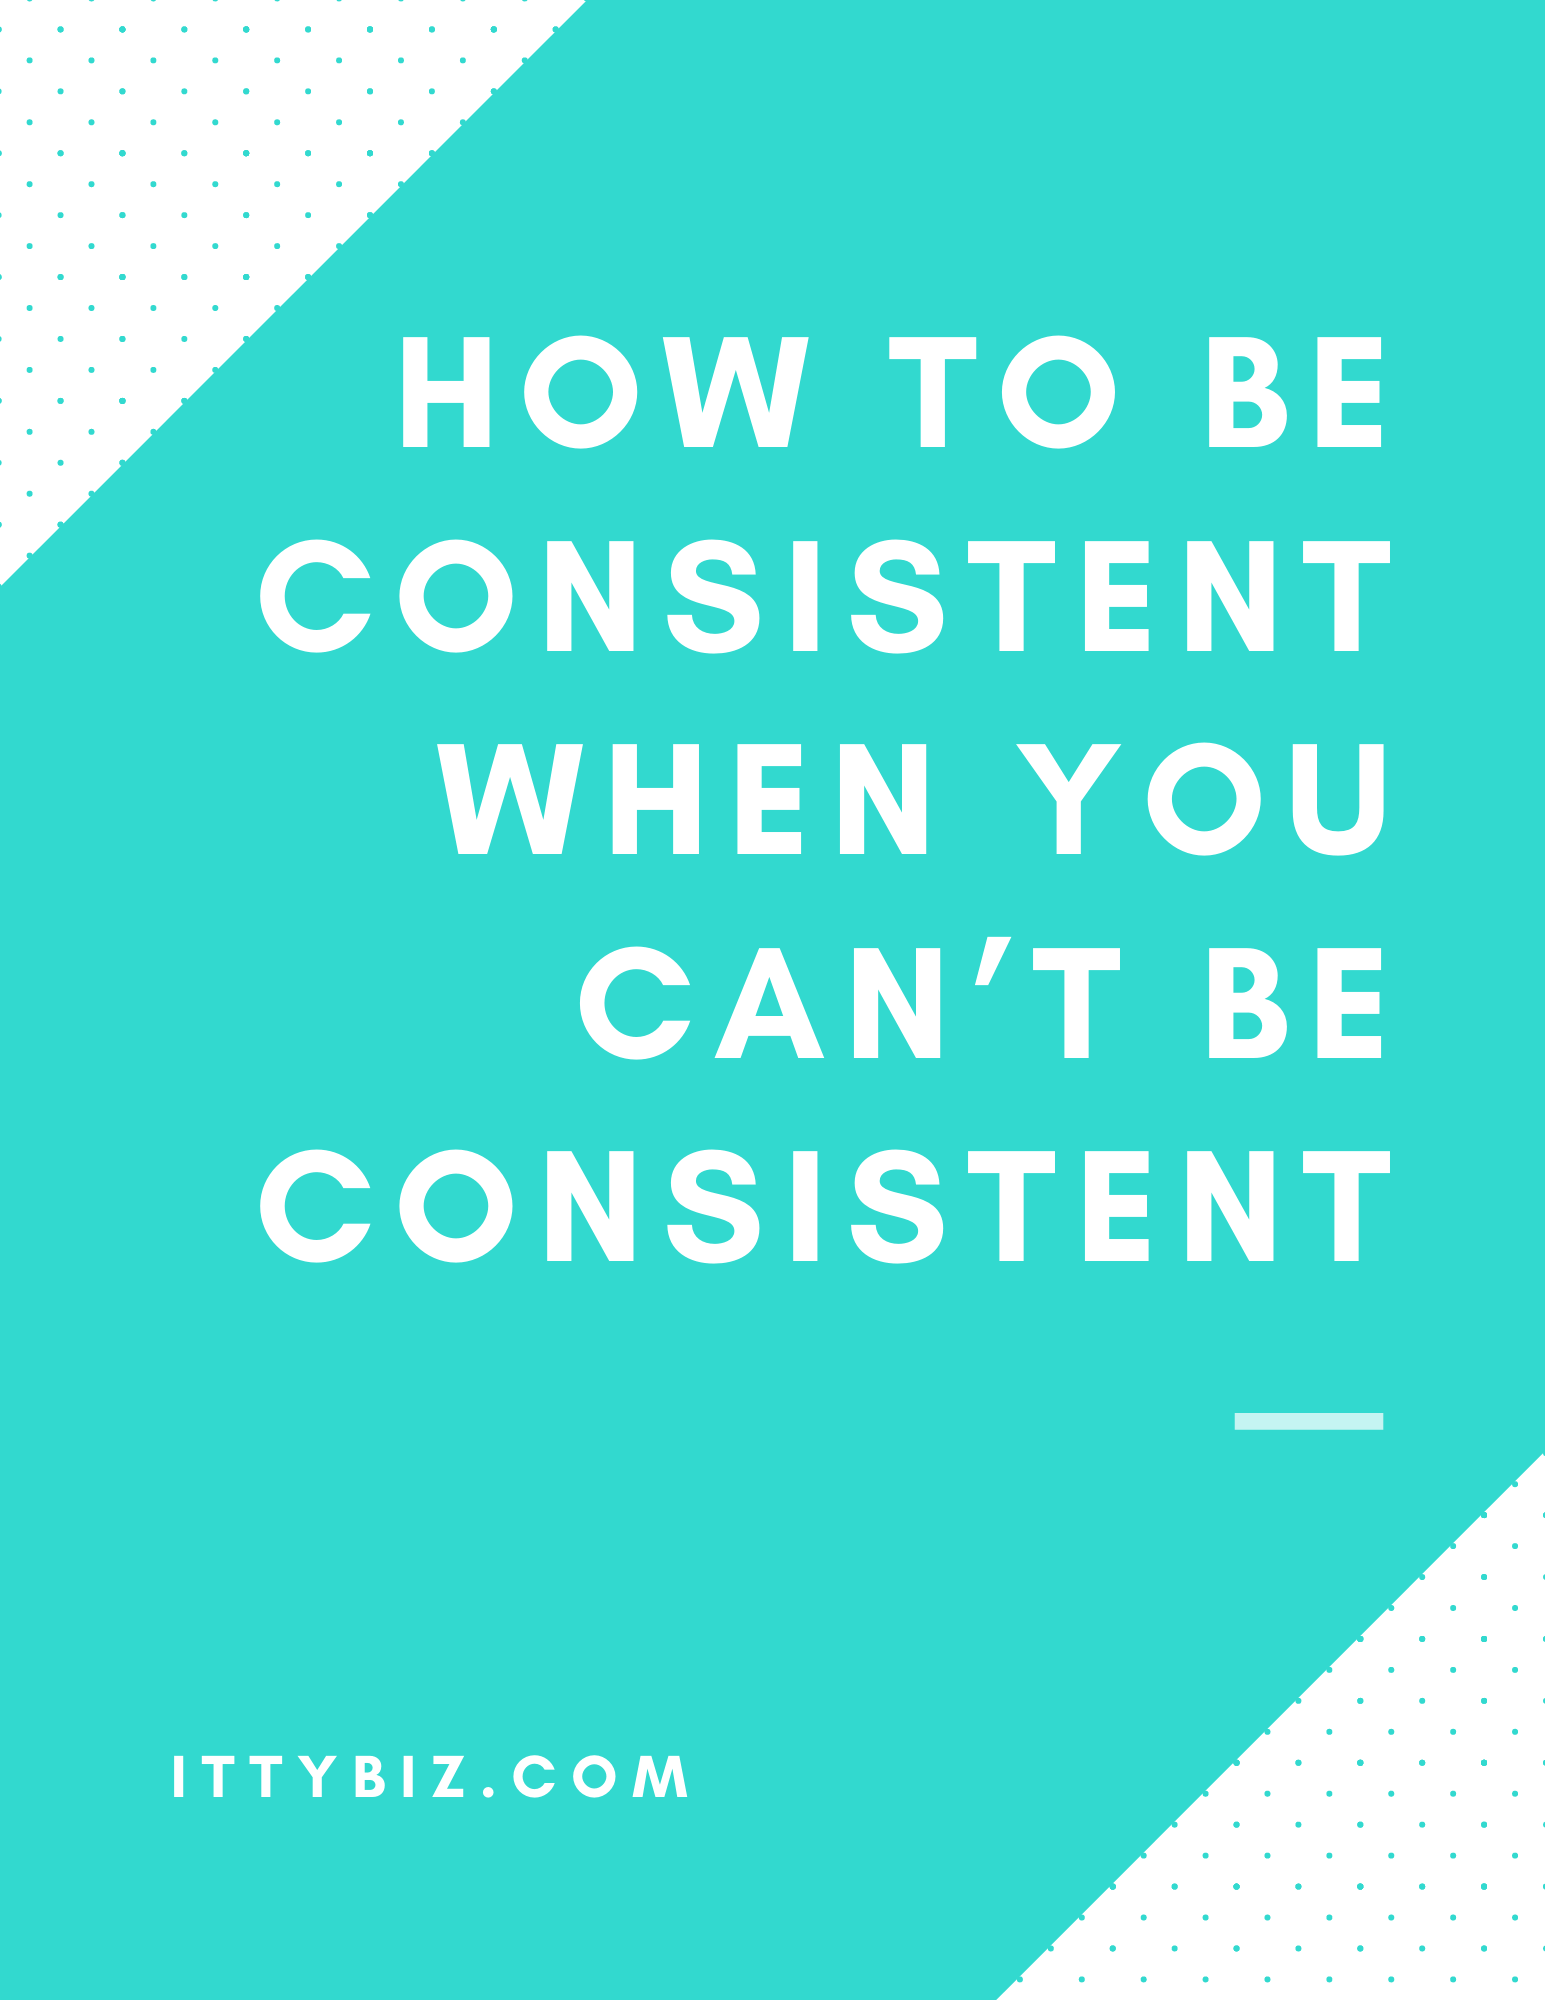 How To Be Consistent When You Can't Be Consistent